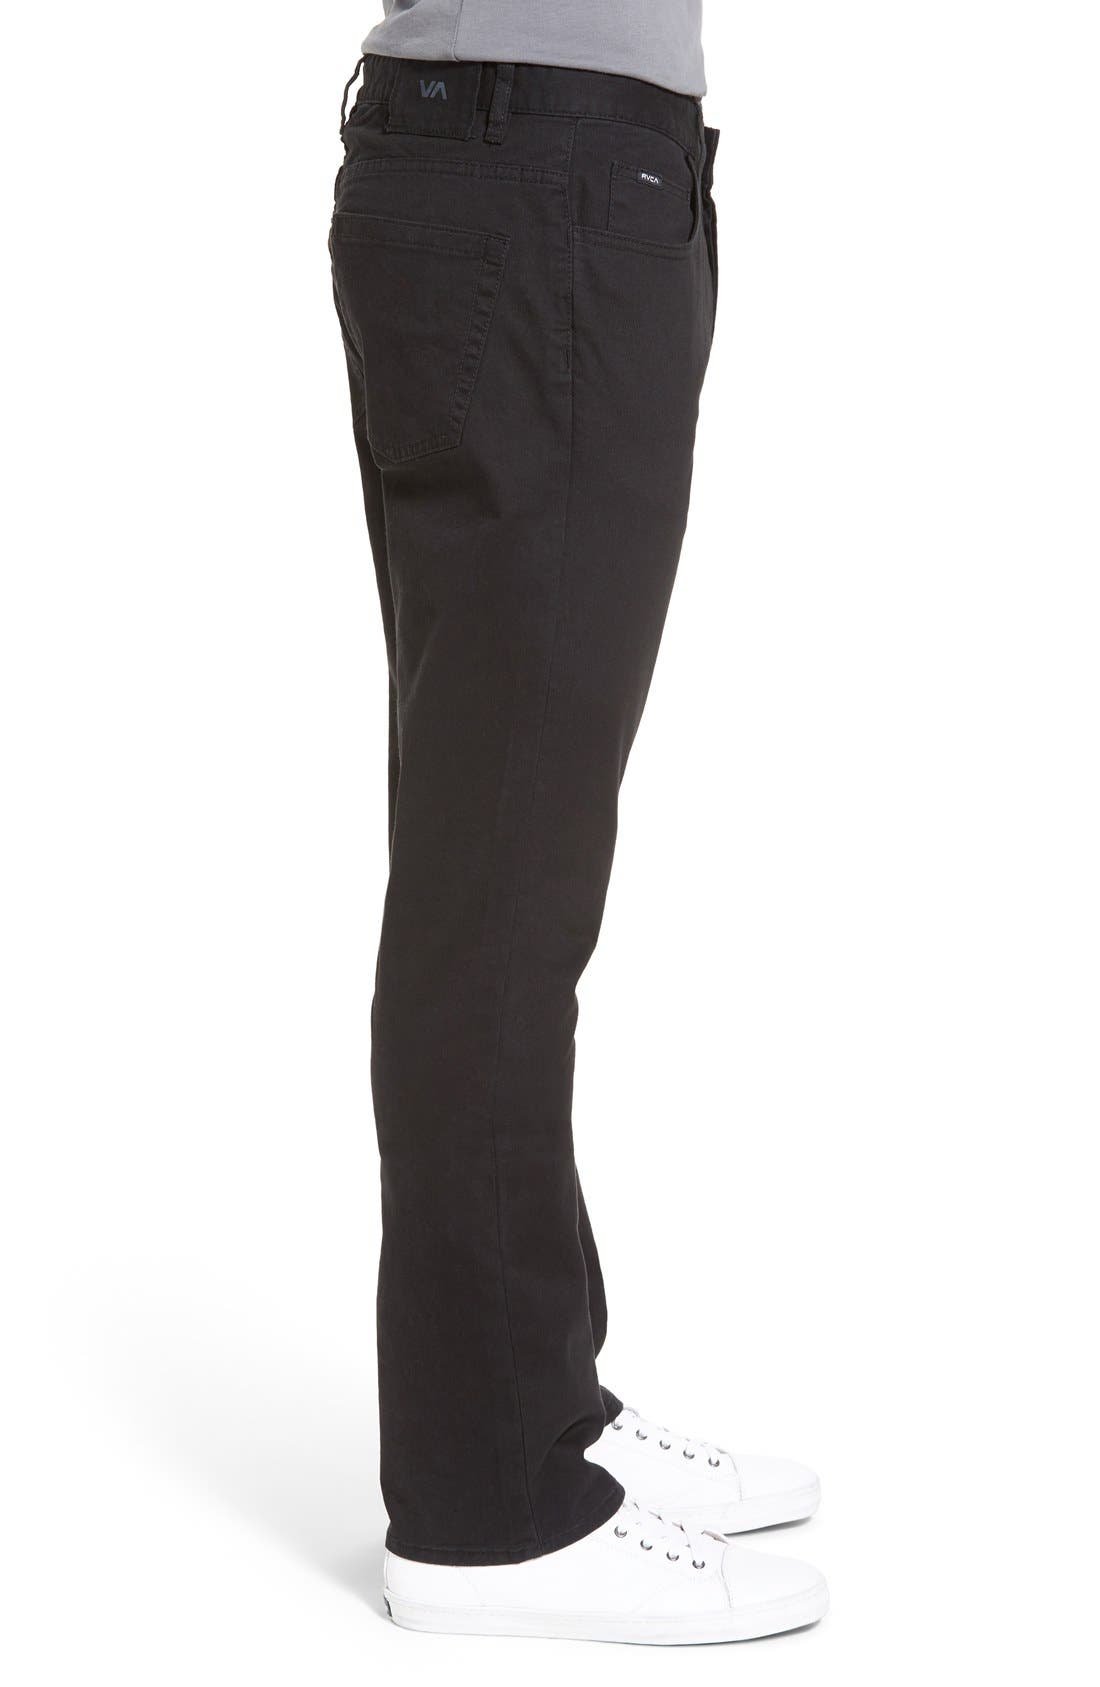 'Stay RVCA' Slim Straight Pants,                             Alternate thumbnail 2, color,                             001